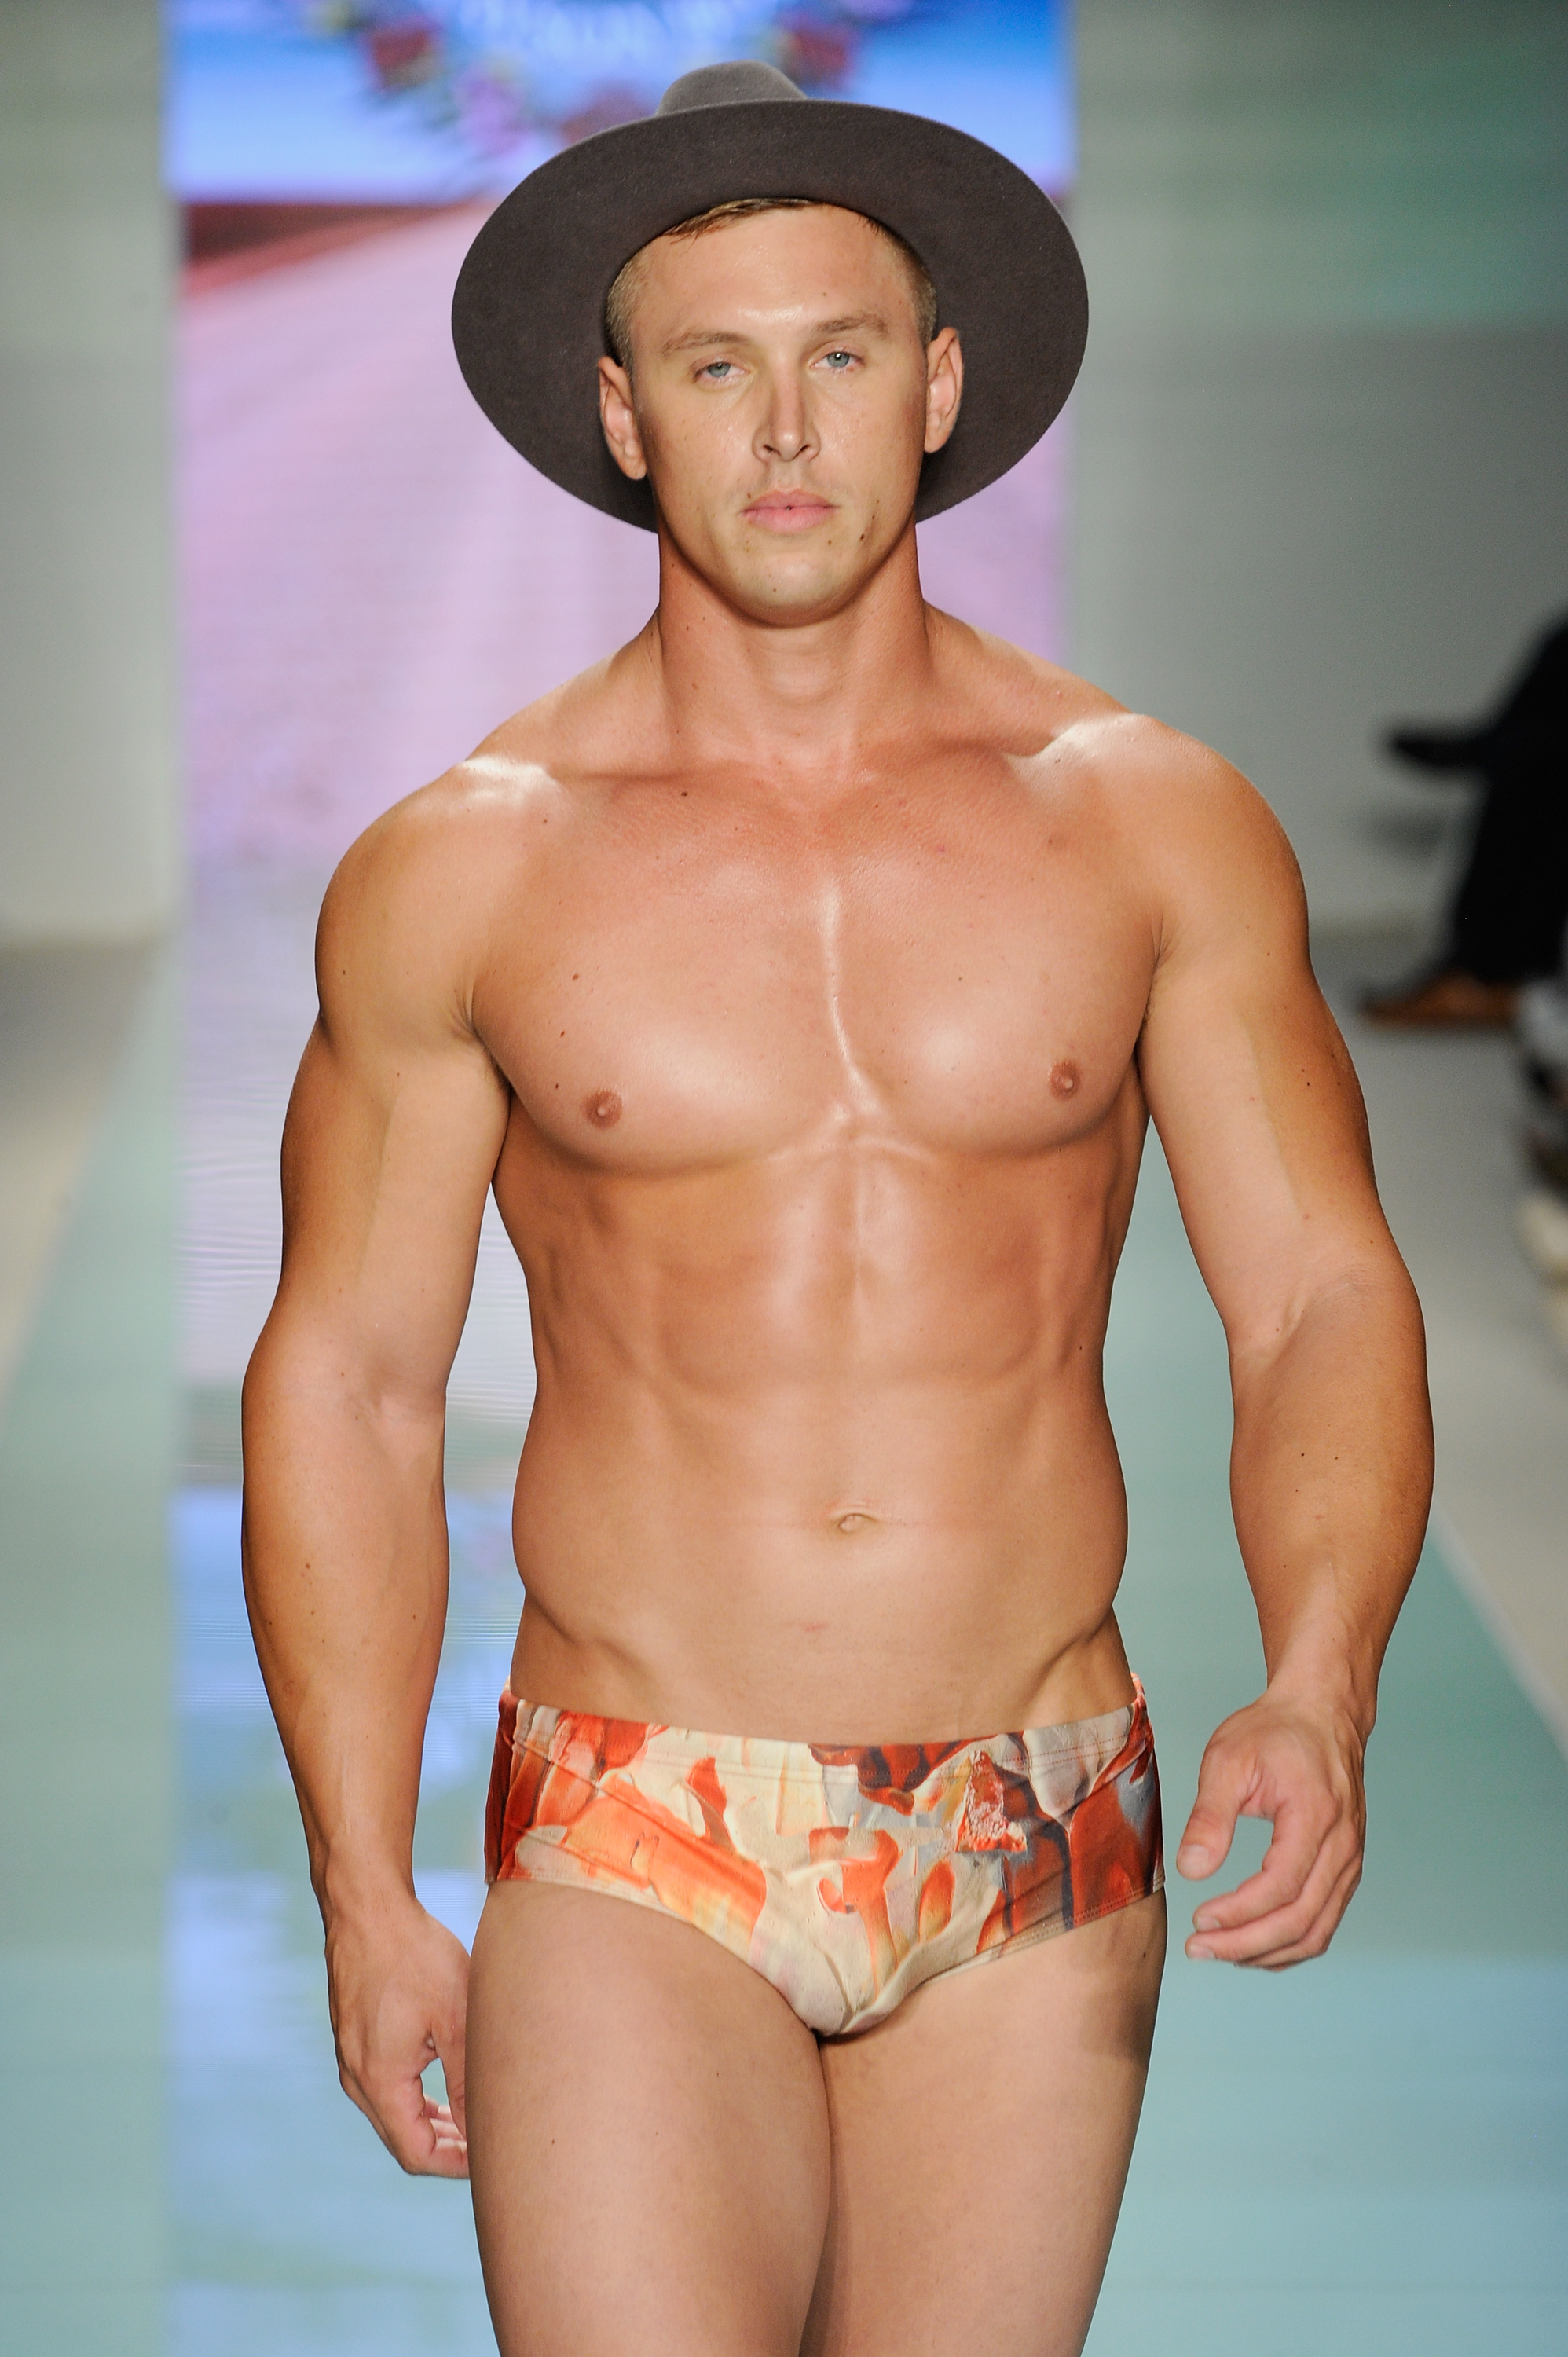 "<p>Male runway models have begun to resemble lanky, scowling schoolboys with smooth, sunken, chests and limbs like twigs but at Miami Swim Week 2017, emerging Australian label <a href=""https://graysonboyd.com/"" target=""_blank"" draggable=""false"">Grayson Boyd</a> has bucked the trend by sending out a barrage of buff boys.</p> <p> Pumped pectorals and tattoos were the order for the day at the US swimwear showcase, with the brand launched by model and talented choreographer Michael Boyd and former swimmer Sam Gray choosing hyper-masculine models to showcase shorts and budgie smugglers with cheeky prints of cockatoos and campfires.</p> <p> Making sure that US buyers picked up on the label's antipodean origins some of the models donned hats fit for the farm but the main accessory for the occasion was freshly pumped biceps and triceps.</p> <p> The collection, with speedo styles featuring a wider leg design, looks set to take on fellow Aussie players in the men's swim market Aussie Bum and Budgy Smuggler who have both relied on buff beefcakes as part of their marketing strategies. <br /> <br /> </p>"